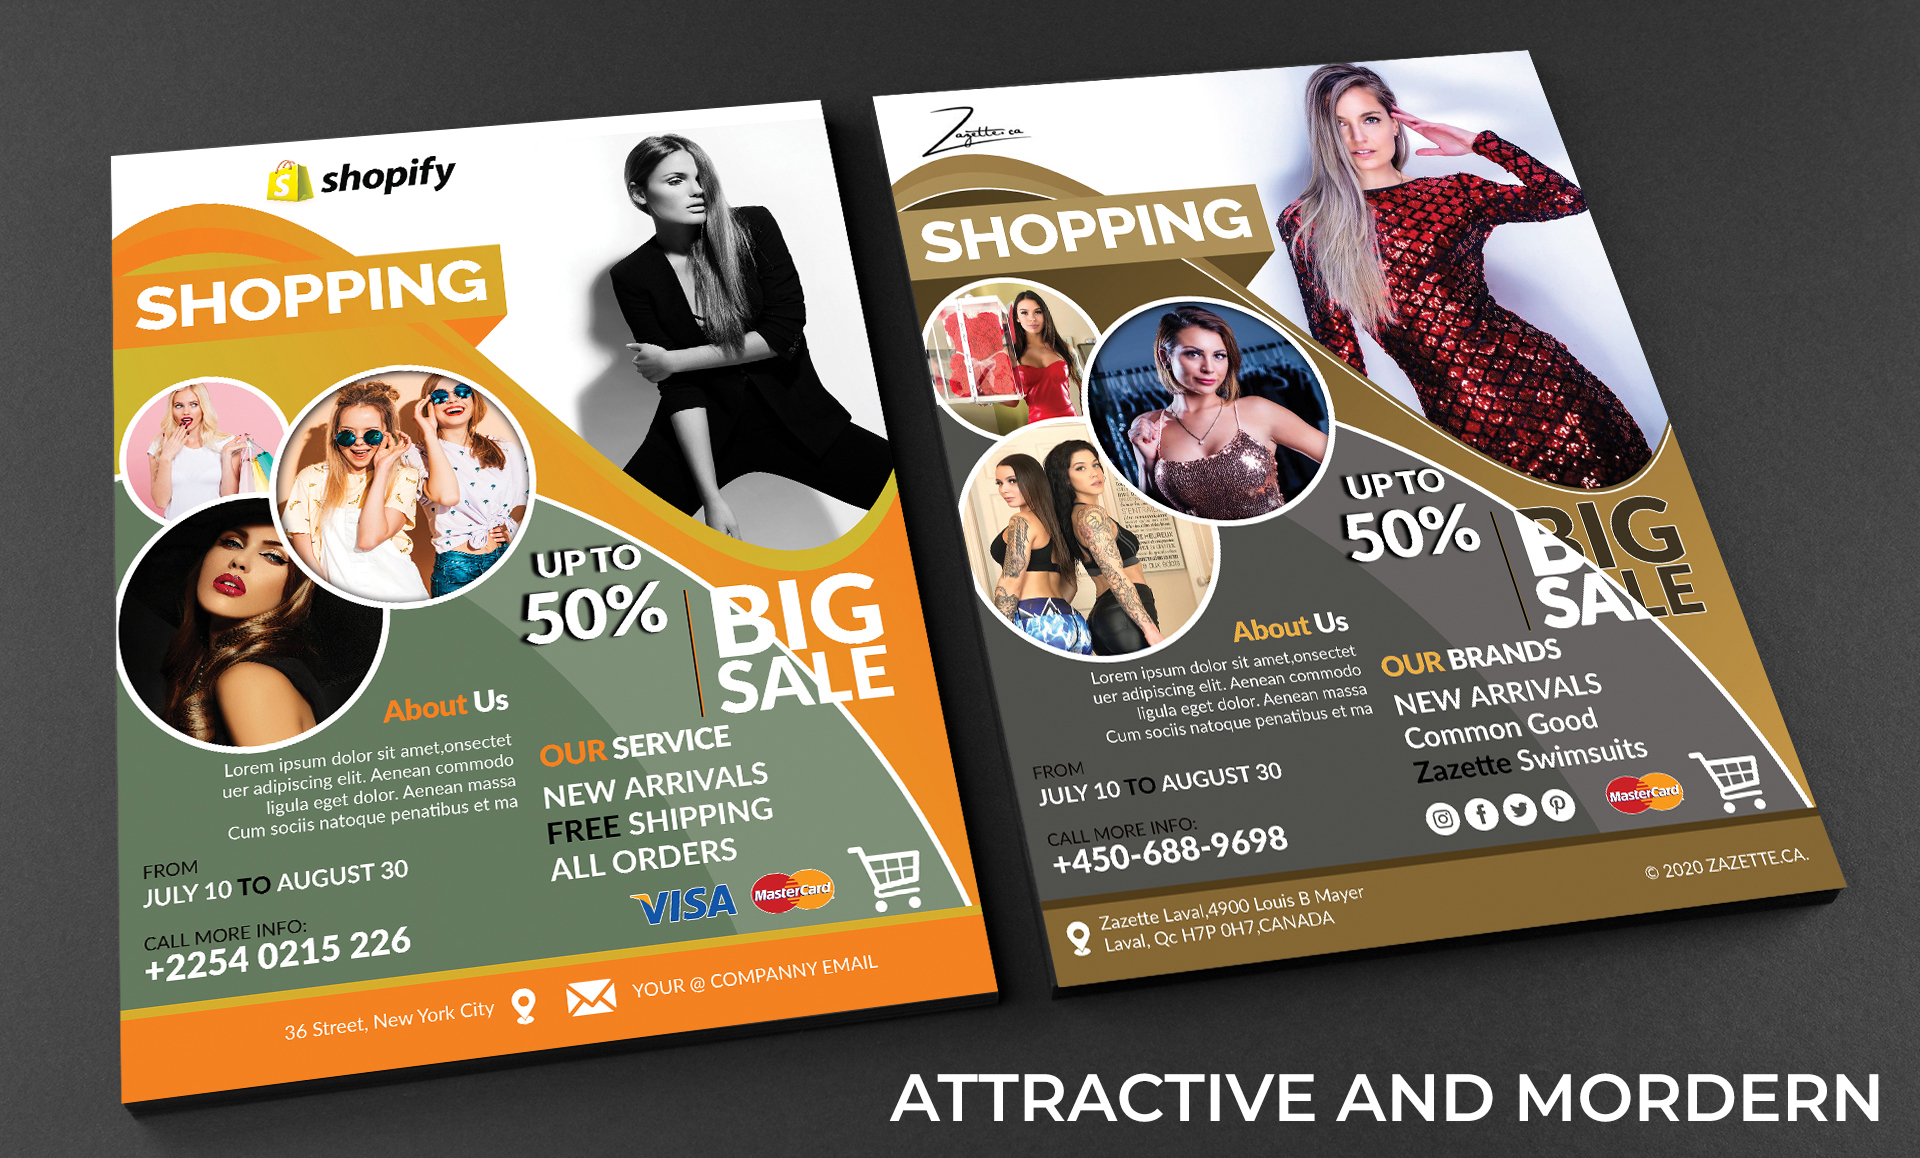 the attractive flyer design within 24h